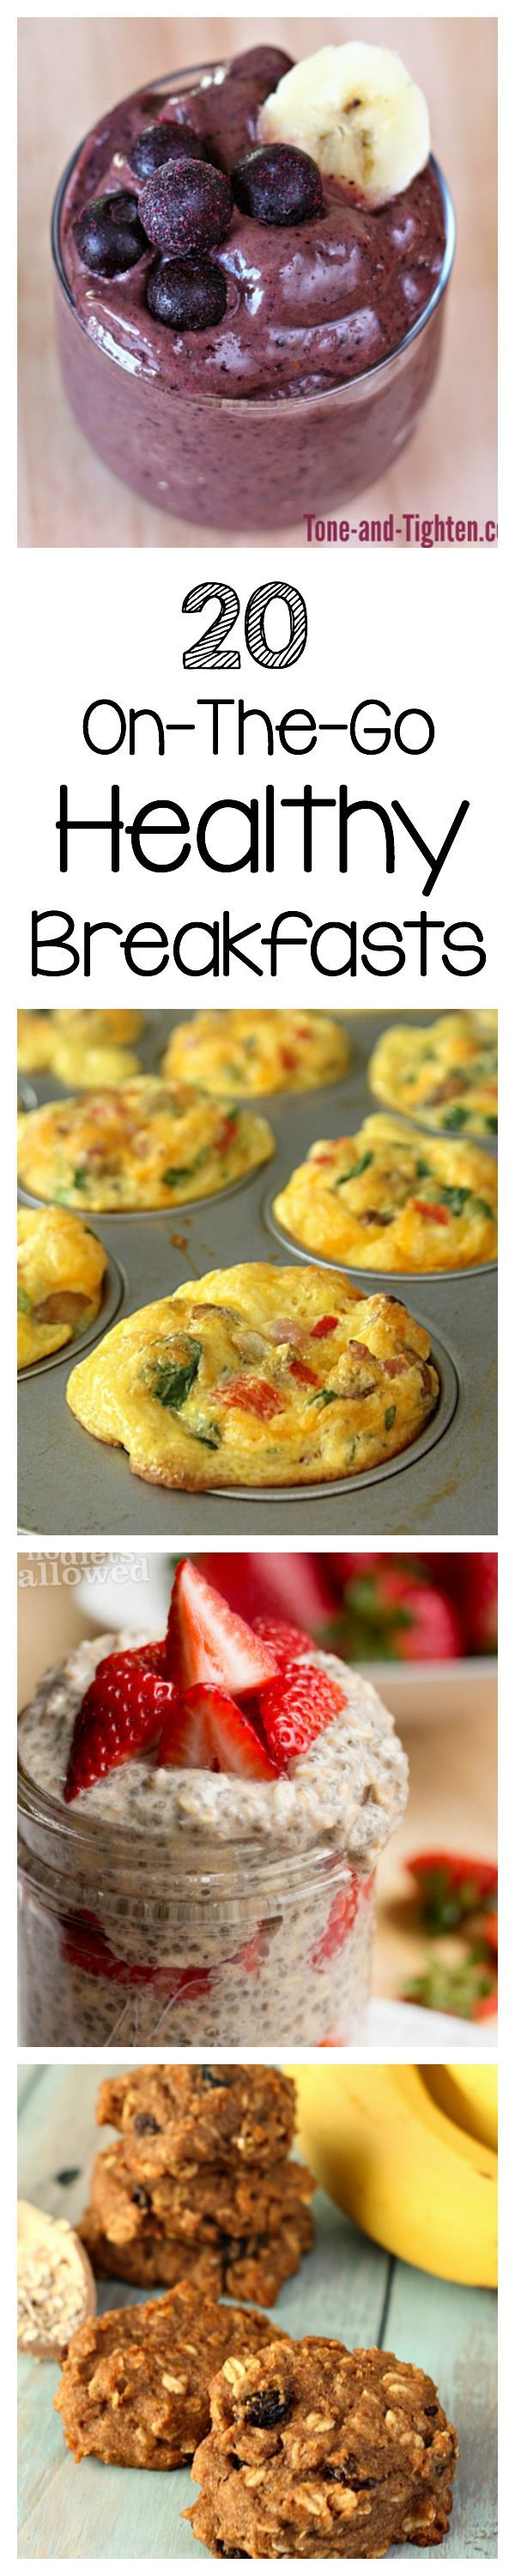 20 On-The-Go Healthy Breakfast Ideas on Tone-and-Tighten.com